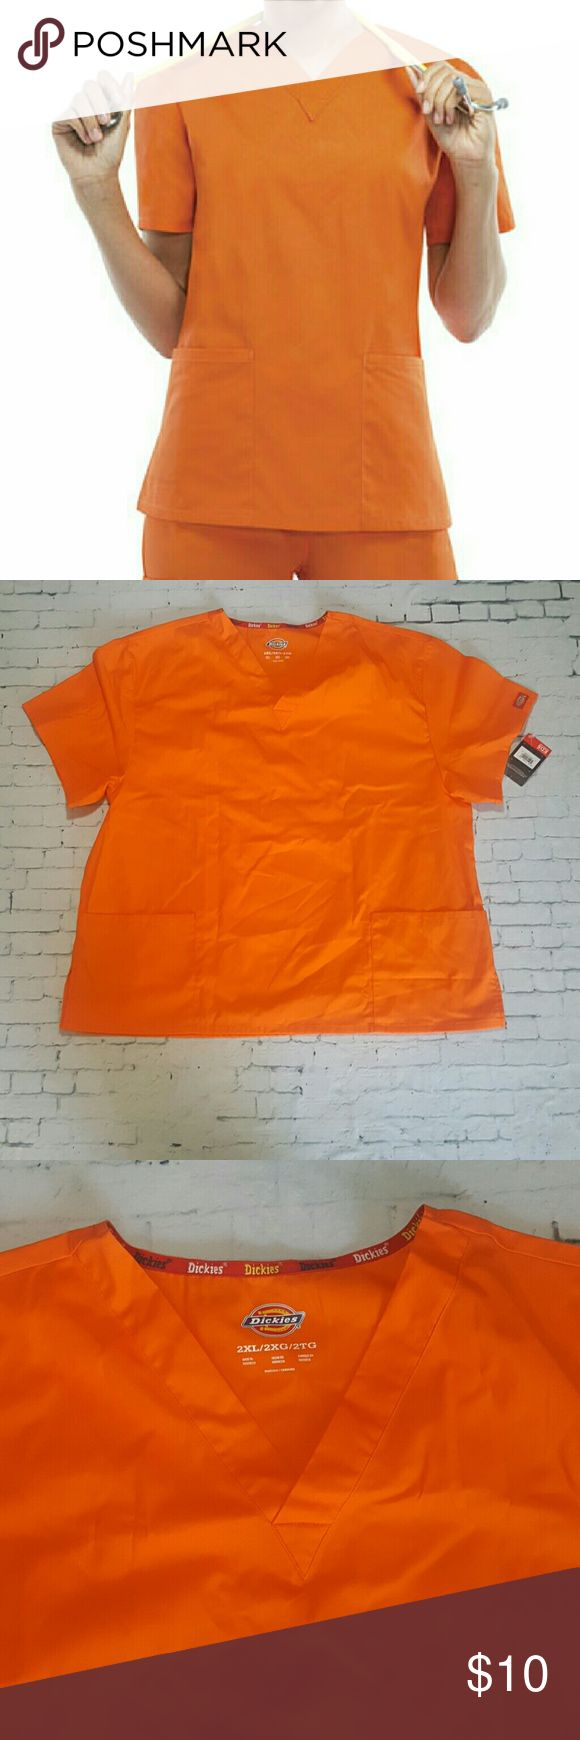 CLEARANCE Dickies Orange Scrub Top-2XL New with tags. Size 2xl.  Any two scrub tops for $13  Grey's Anatomy  Urbane HeartSoul  Iguana  Dickies Med Couture Cherokee  Koi Landau Dickies Tops